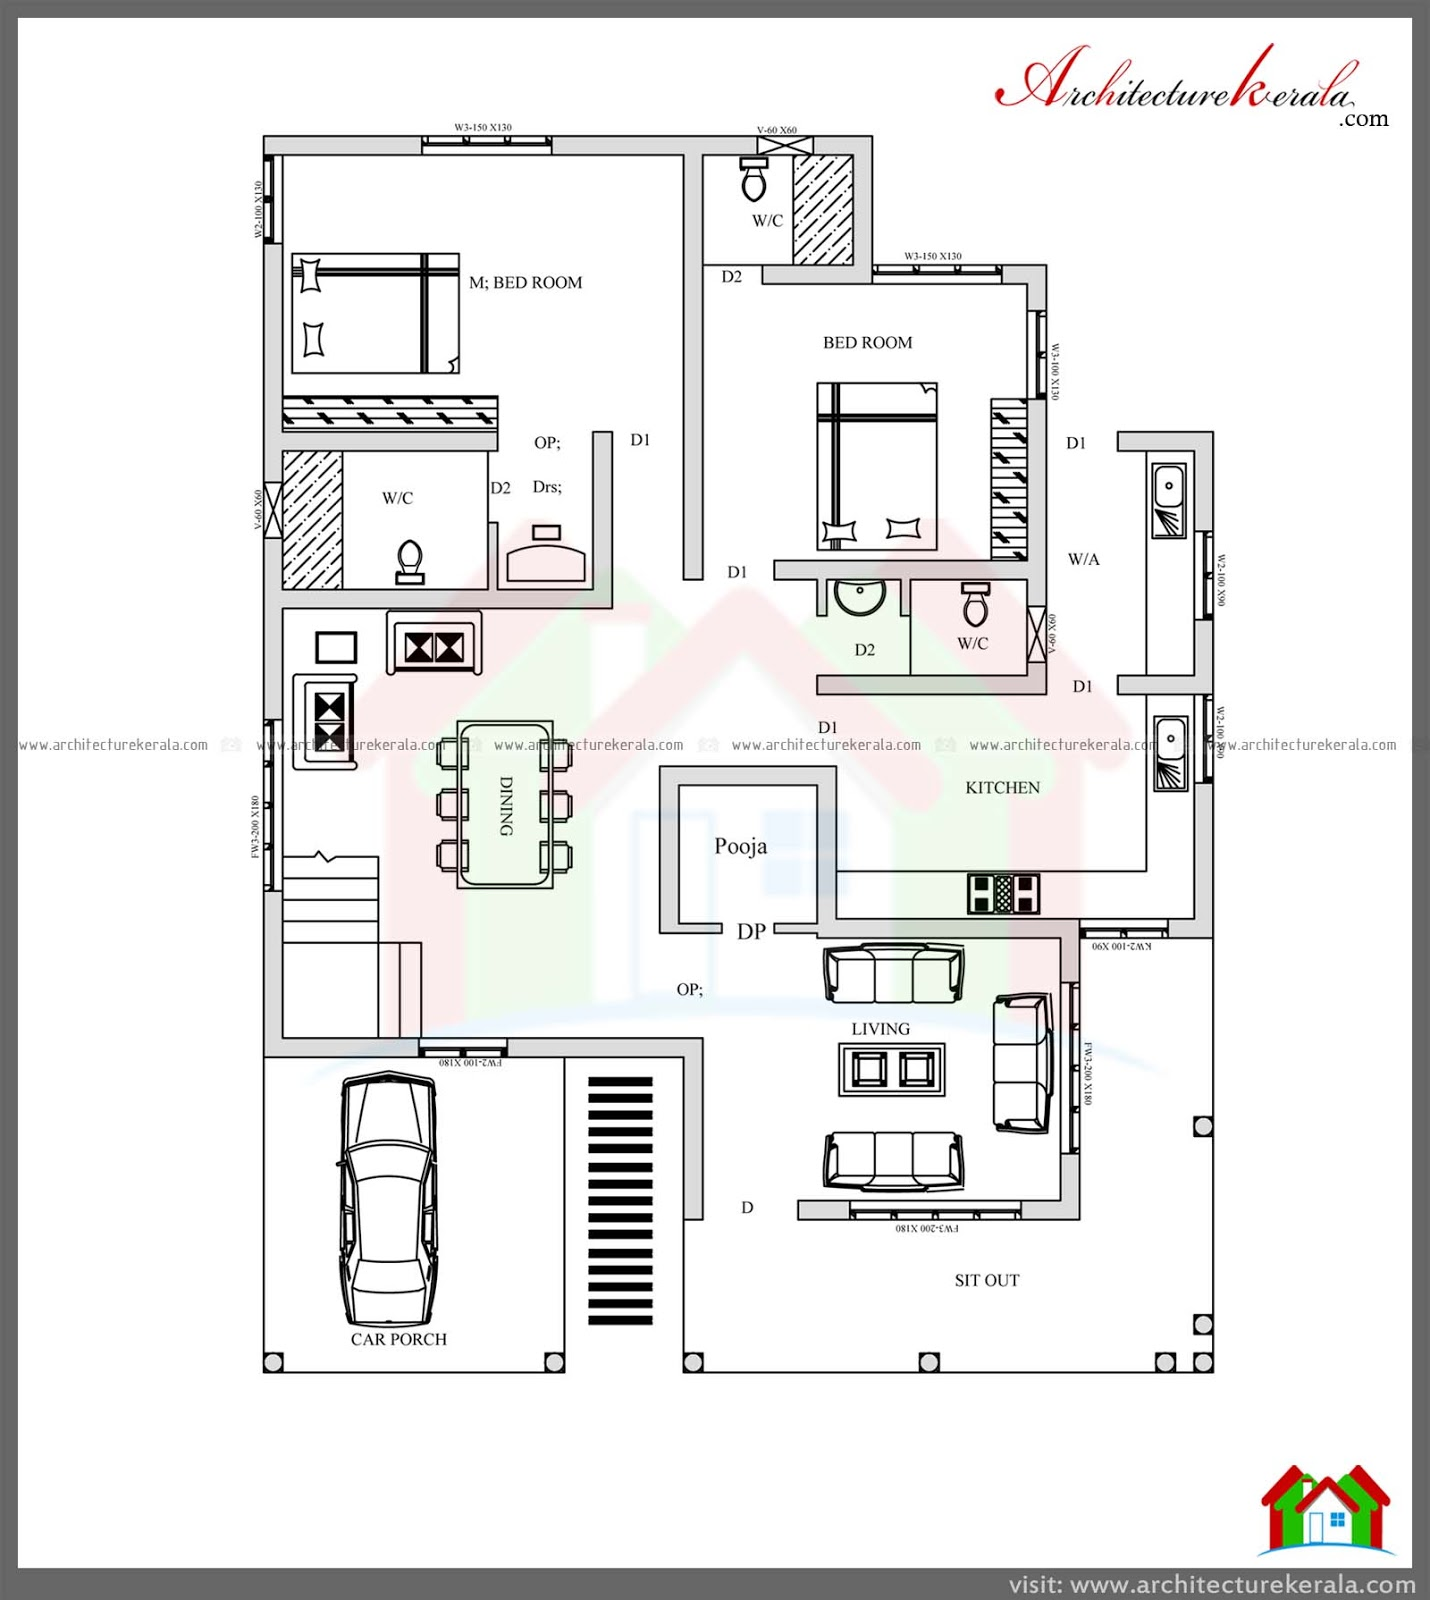 Stunning 4 bedroom kerala home design with pooja room free for Four bedroom kerala house plans